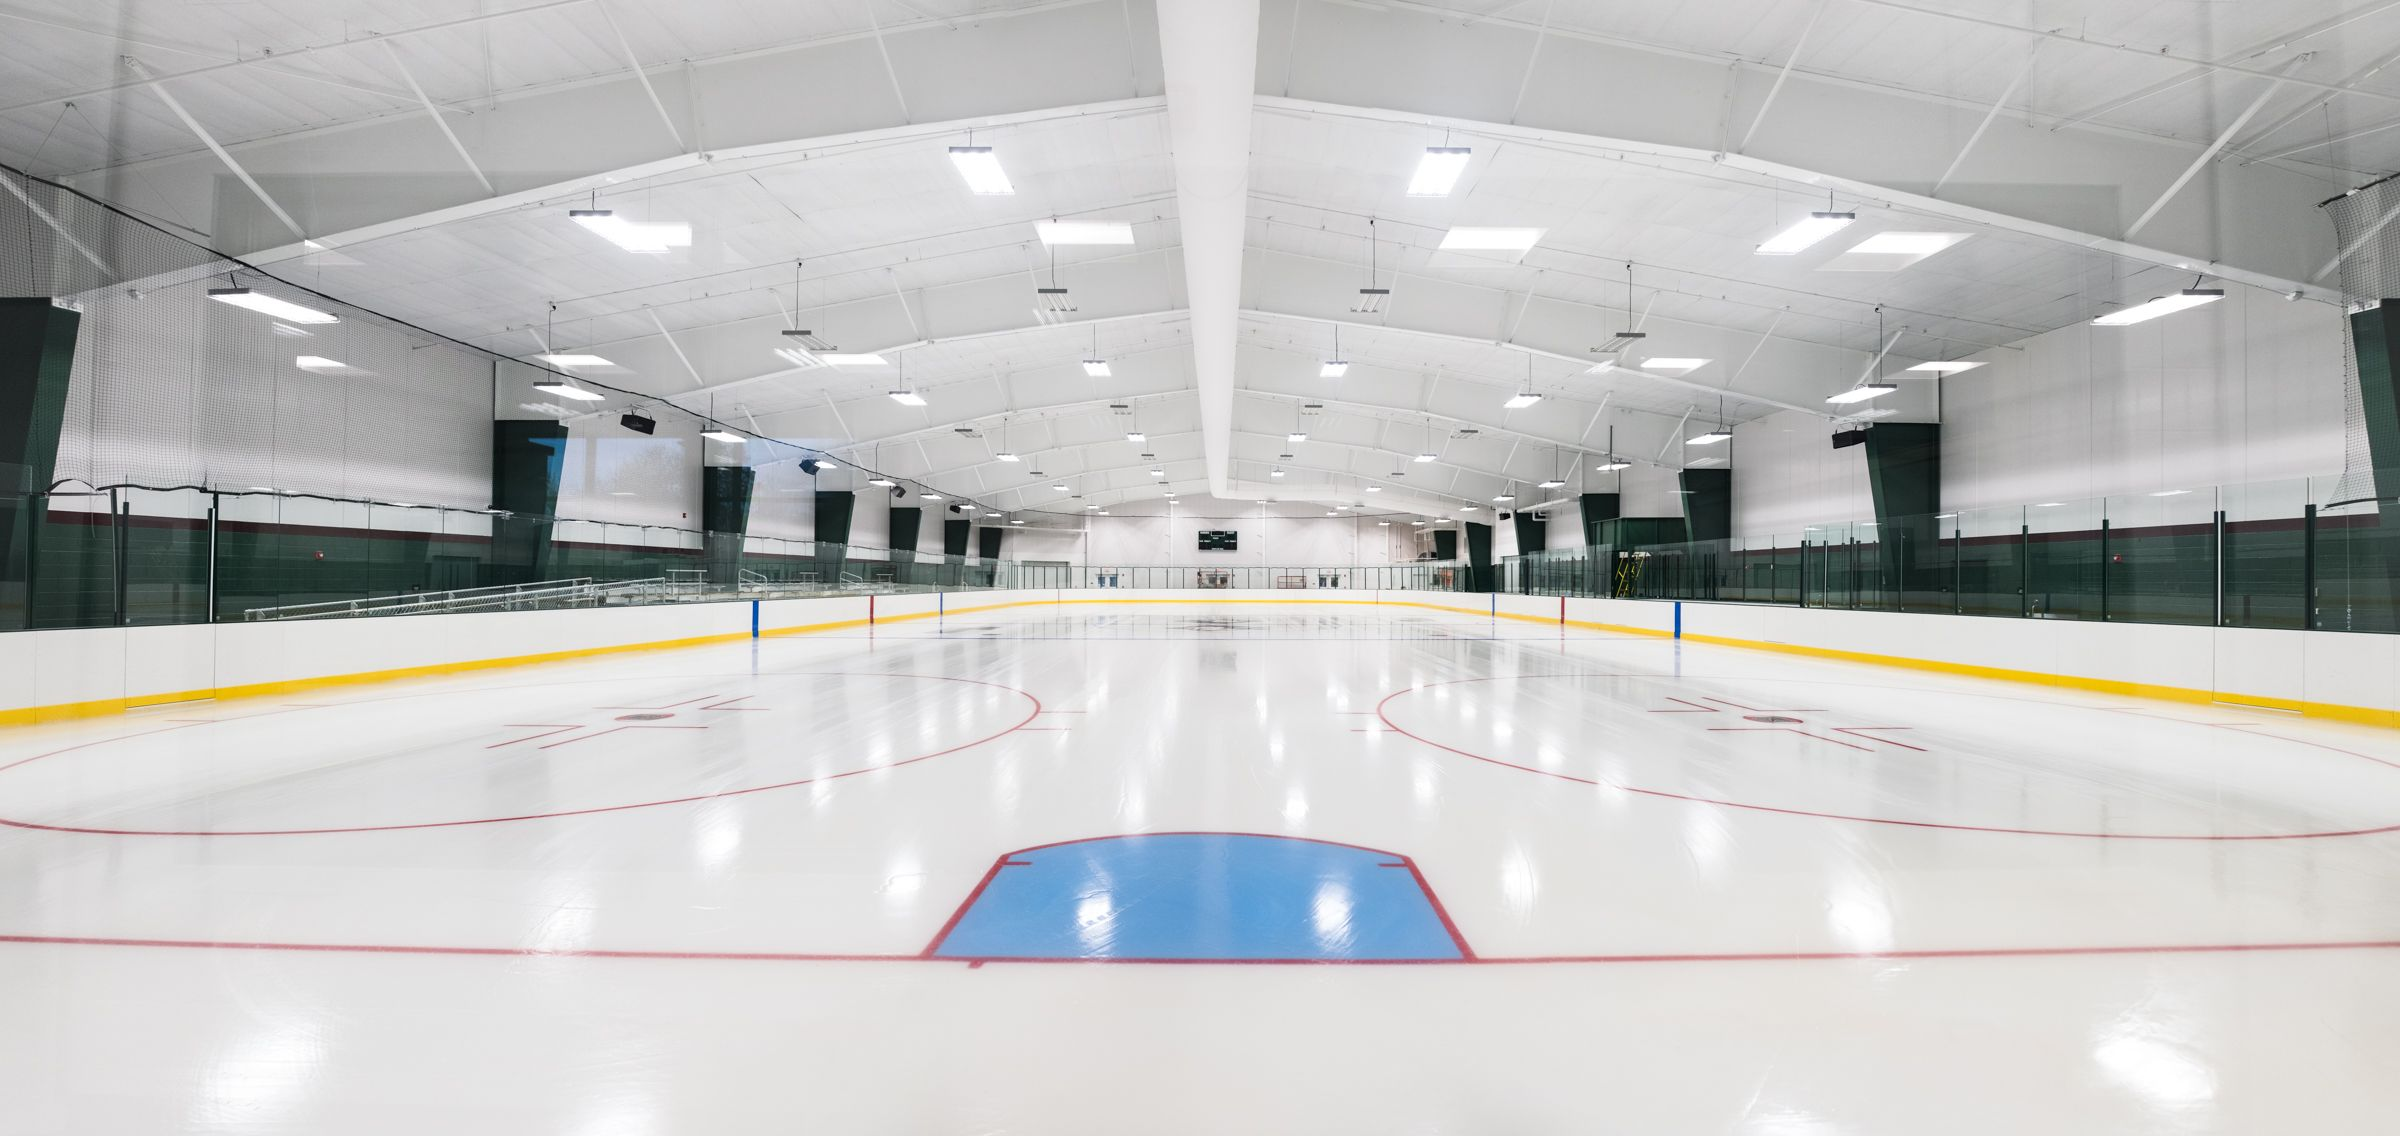 New Hampton School's state-of-the-art ice rink, Jacobson Arena